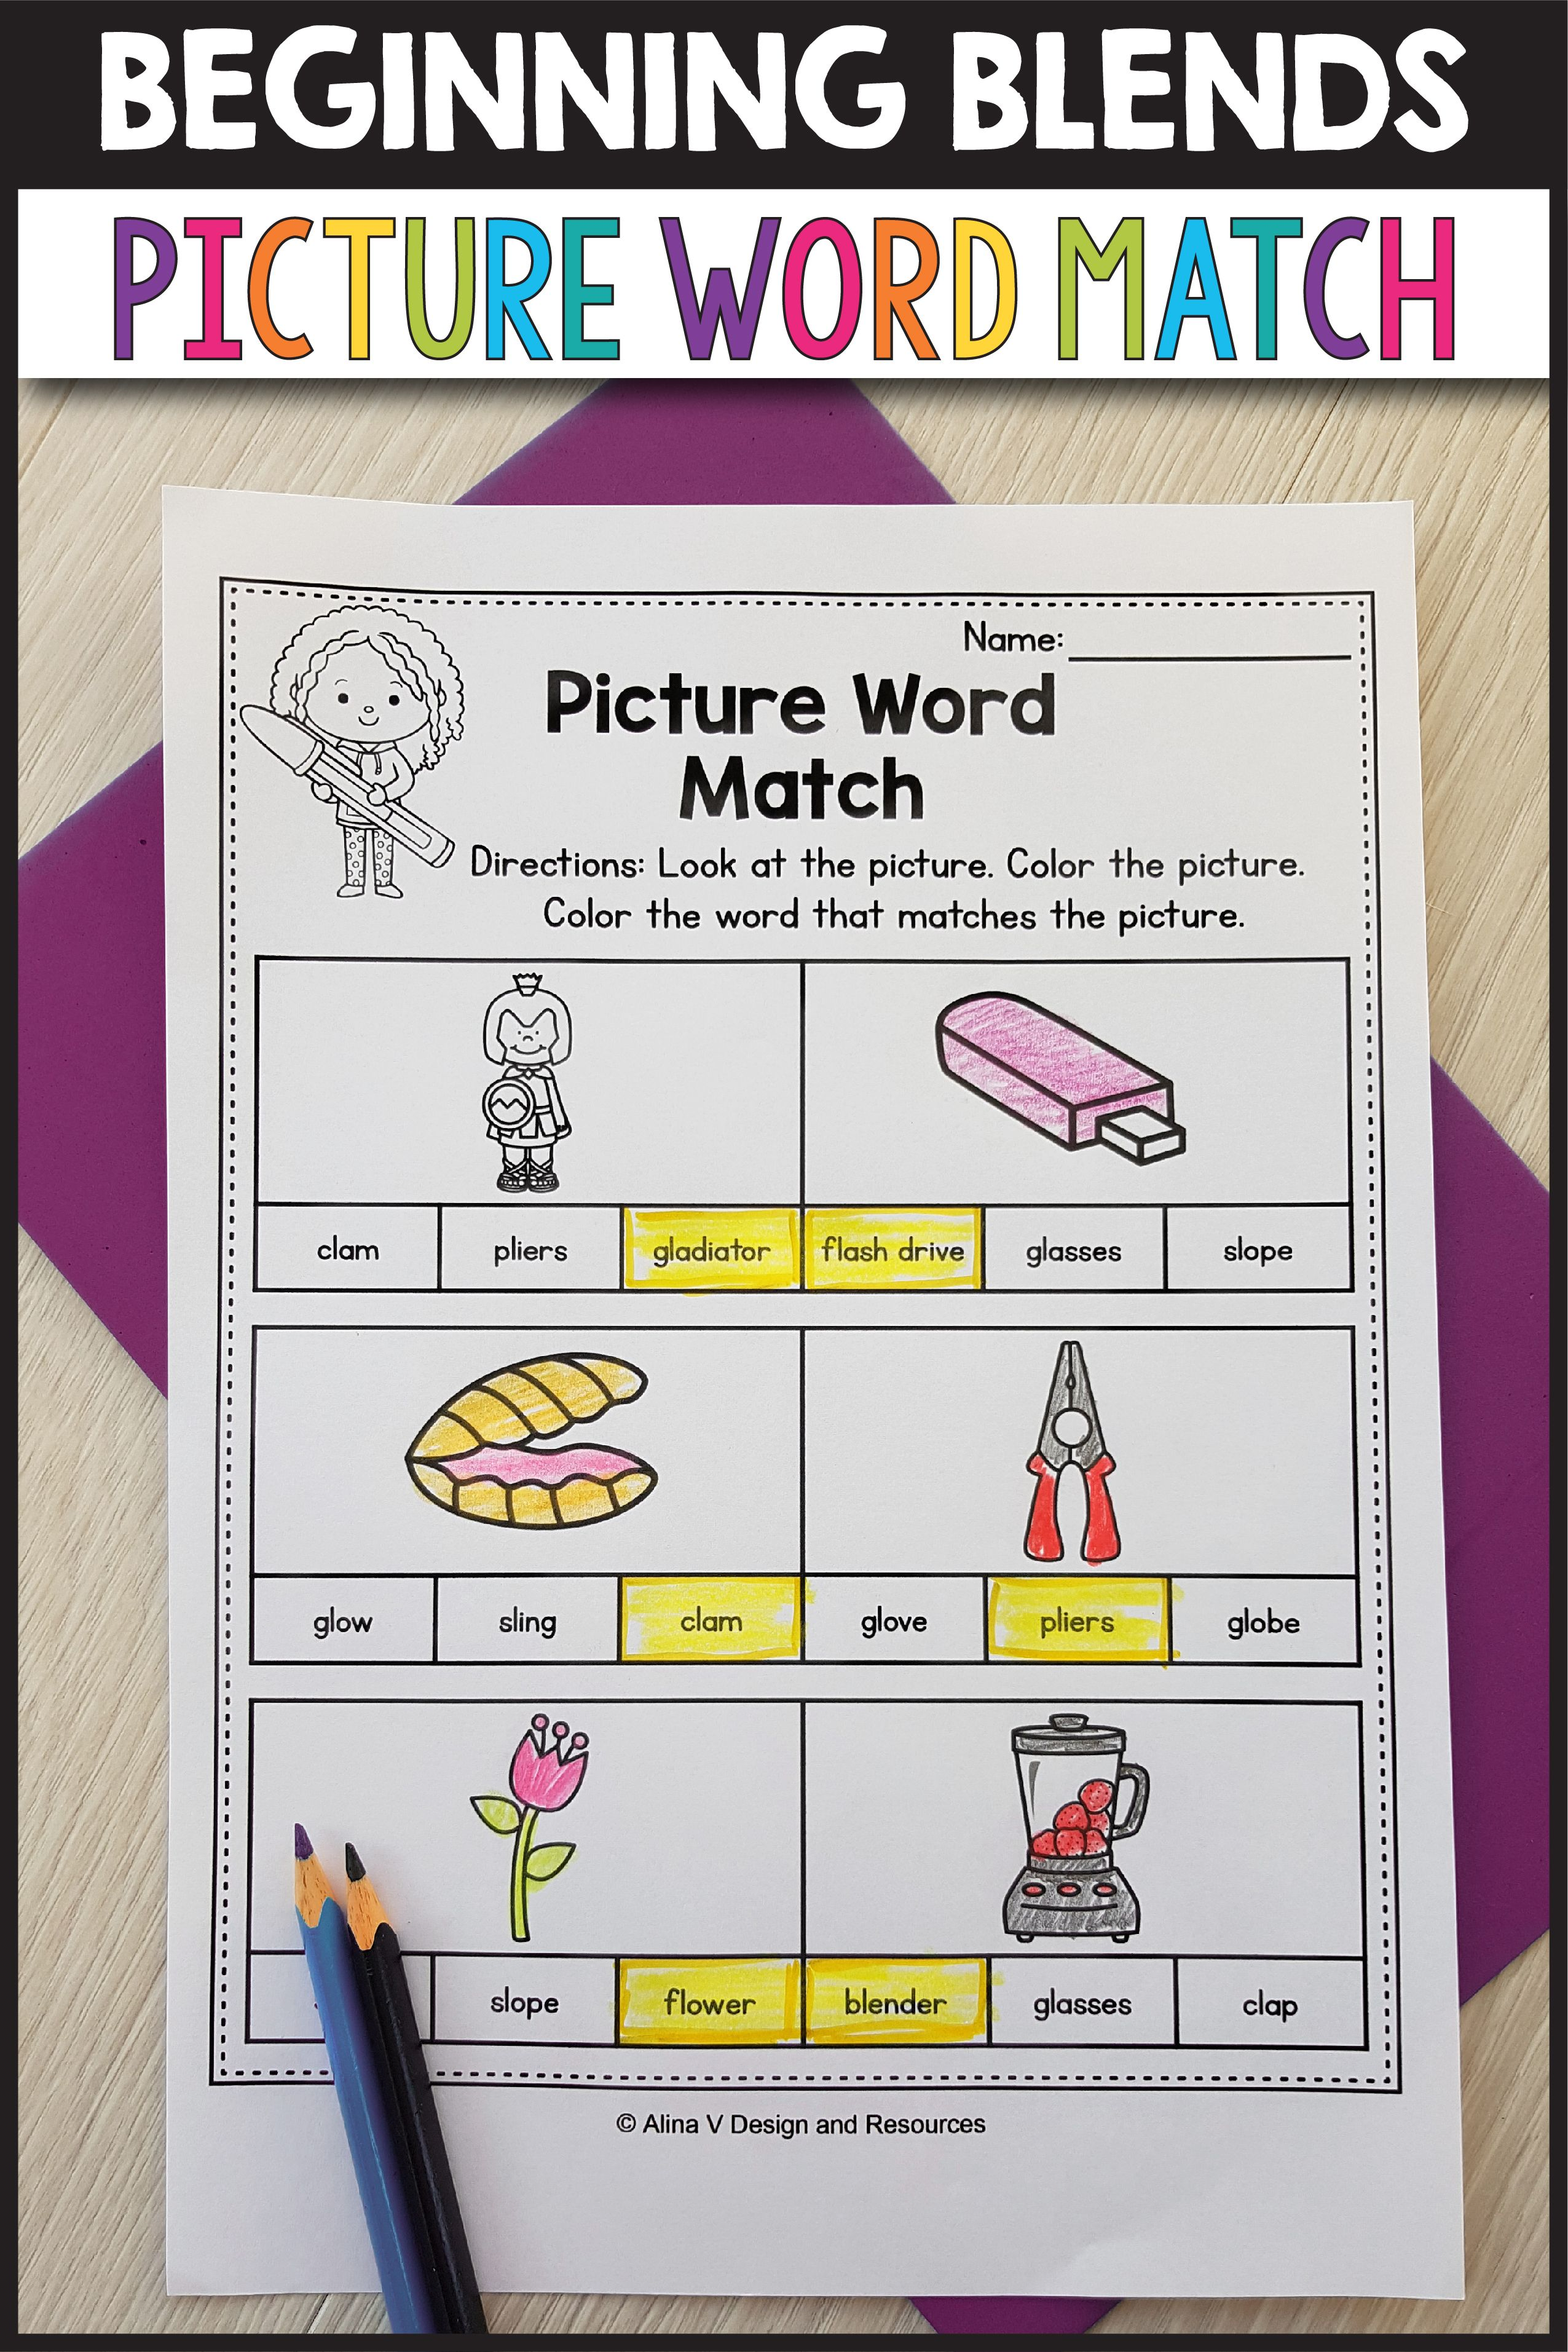 S Blends Worksheets R Blends Activities